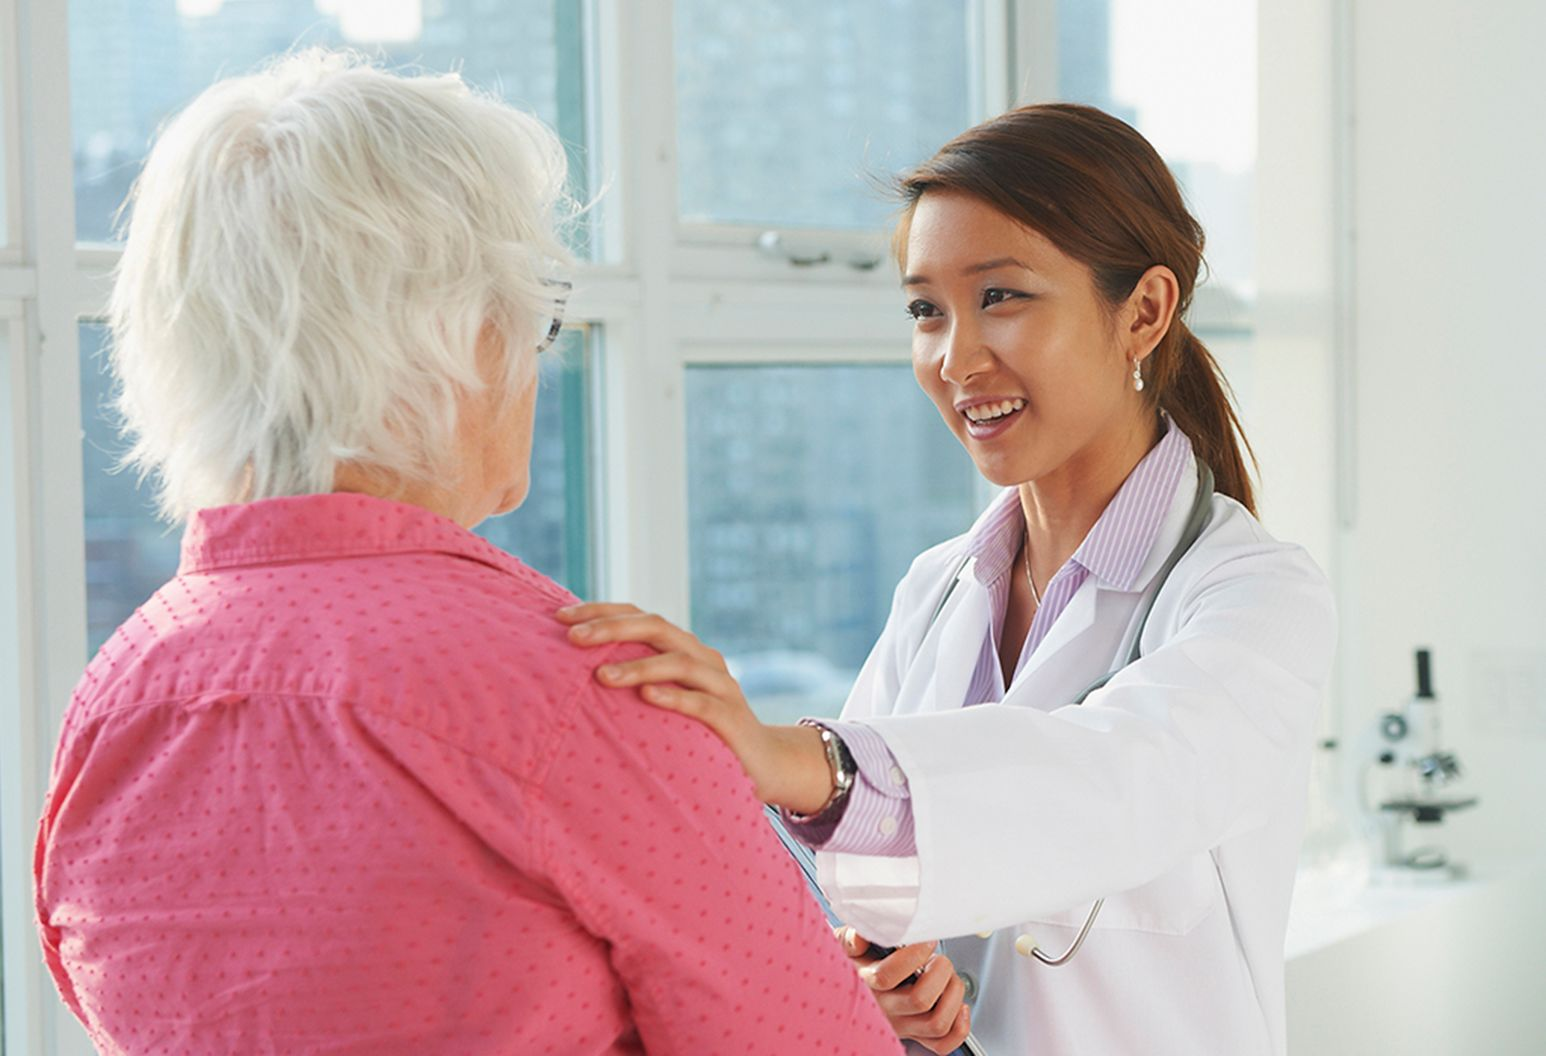 A cheerful female doctor smiles at an elderly female patient.